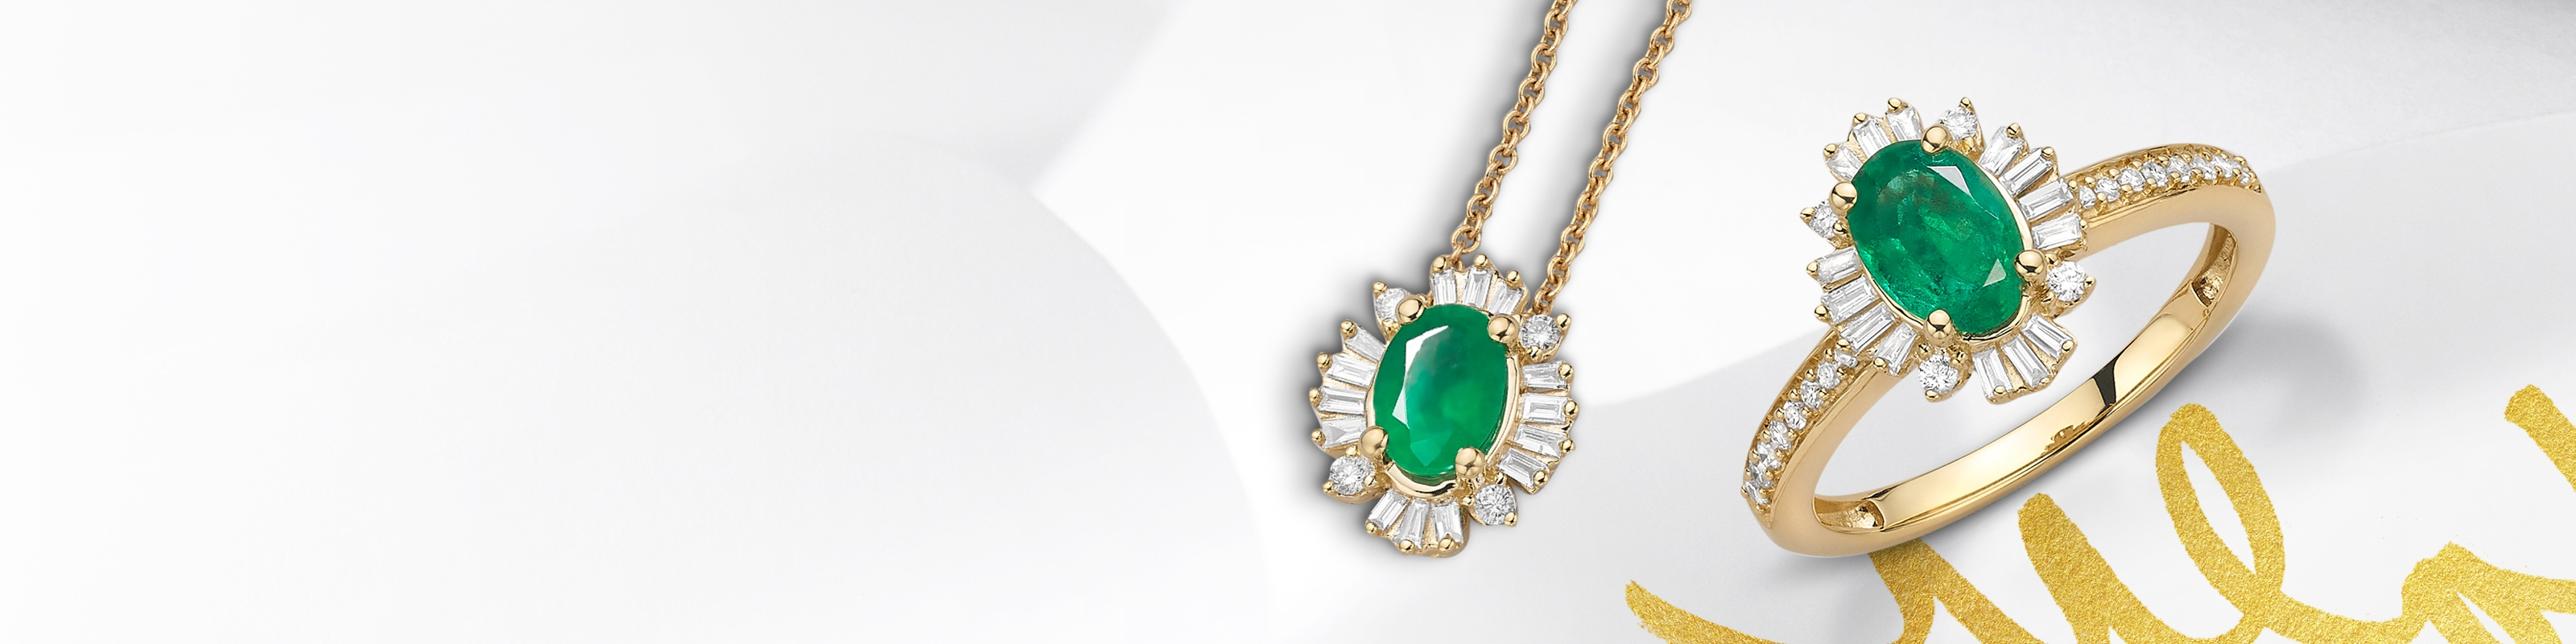 Emerald ring and necklace set in yellow gold. Shop all emerald jewelry at Jared.